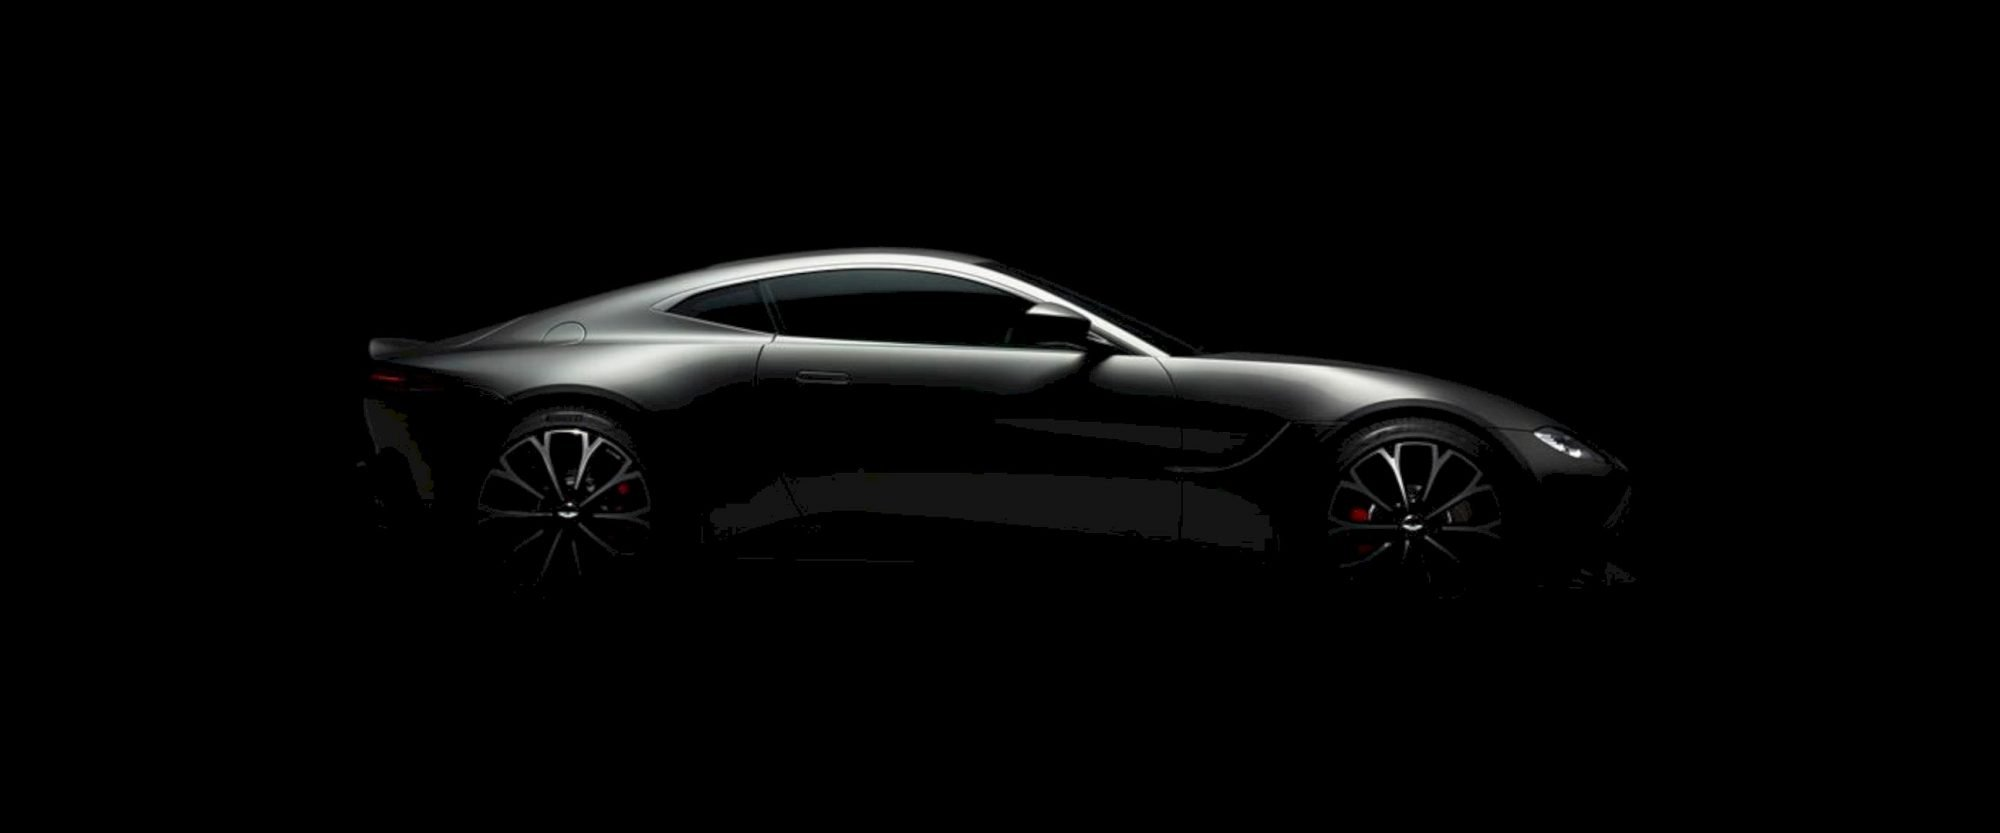 Aston Martin New Vantage: The Archetypal Hunter